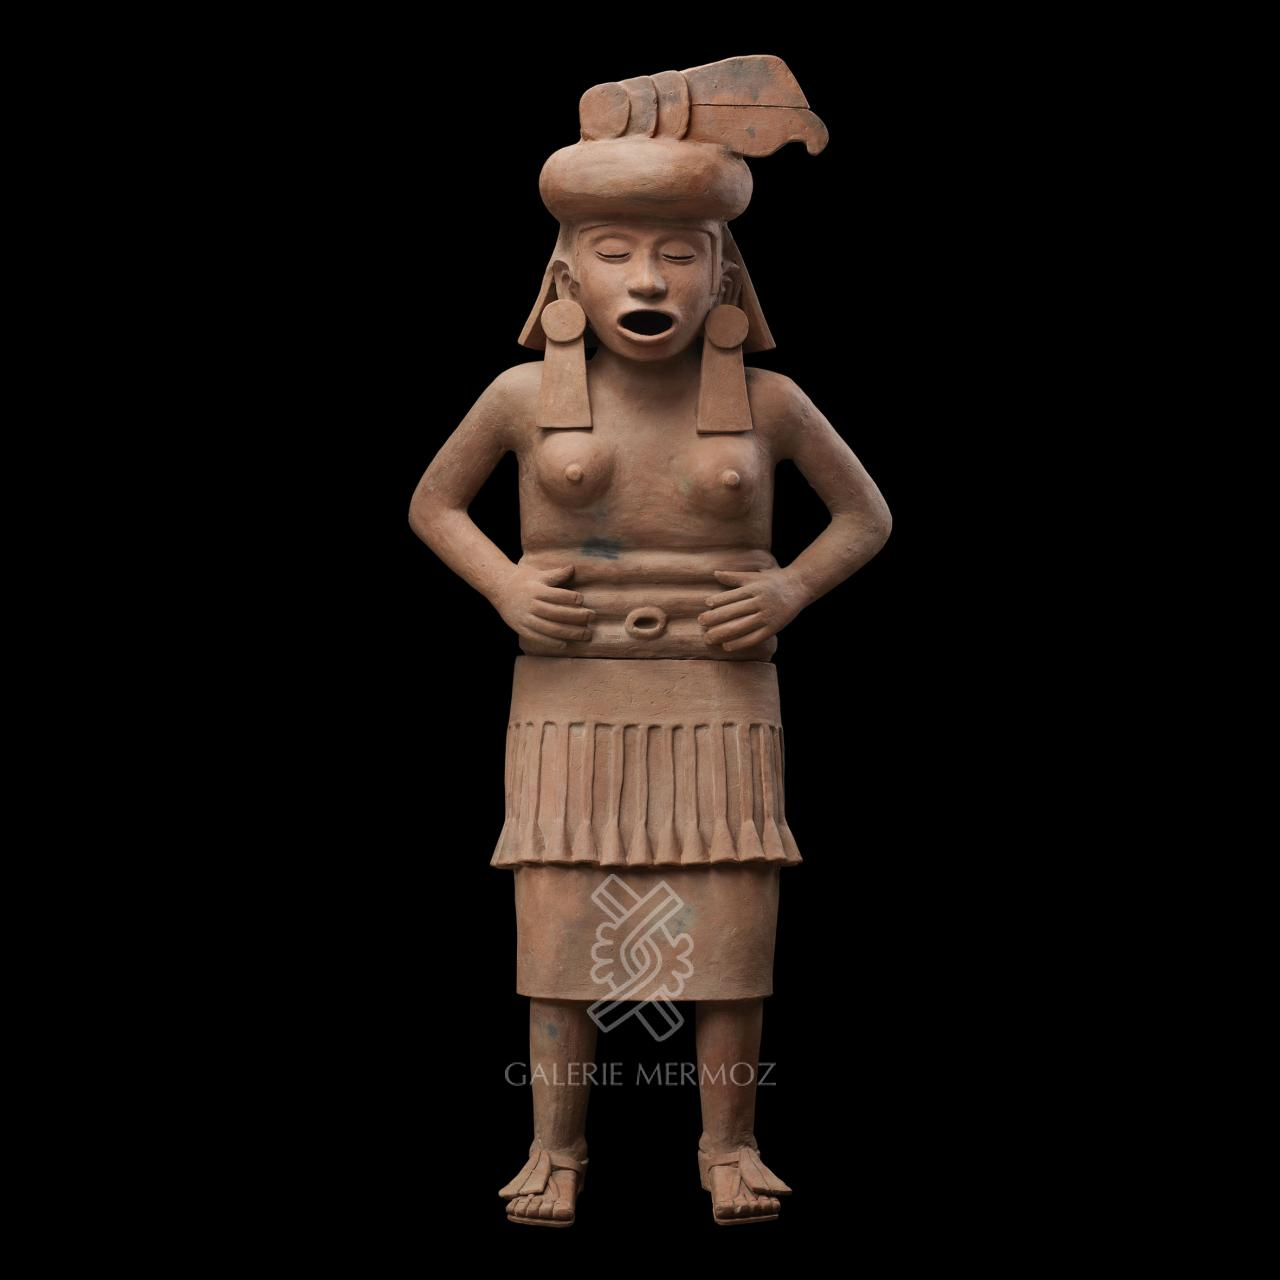 Fascinating Pre-Columbian Art at PAD Geneve 2019 Galerie Mermoz - Standing Goddess pad geneve Fascinating Pre-Columbian Art at PAD Geneve 2019: Galerie Mermoz Fascinating Pre Columbian Art at PAD 2019 Galerie Mermoz Standing Goddess